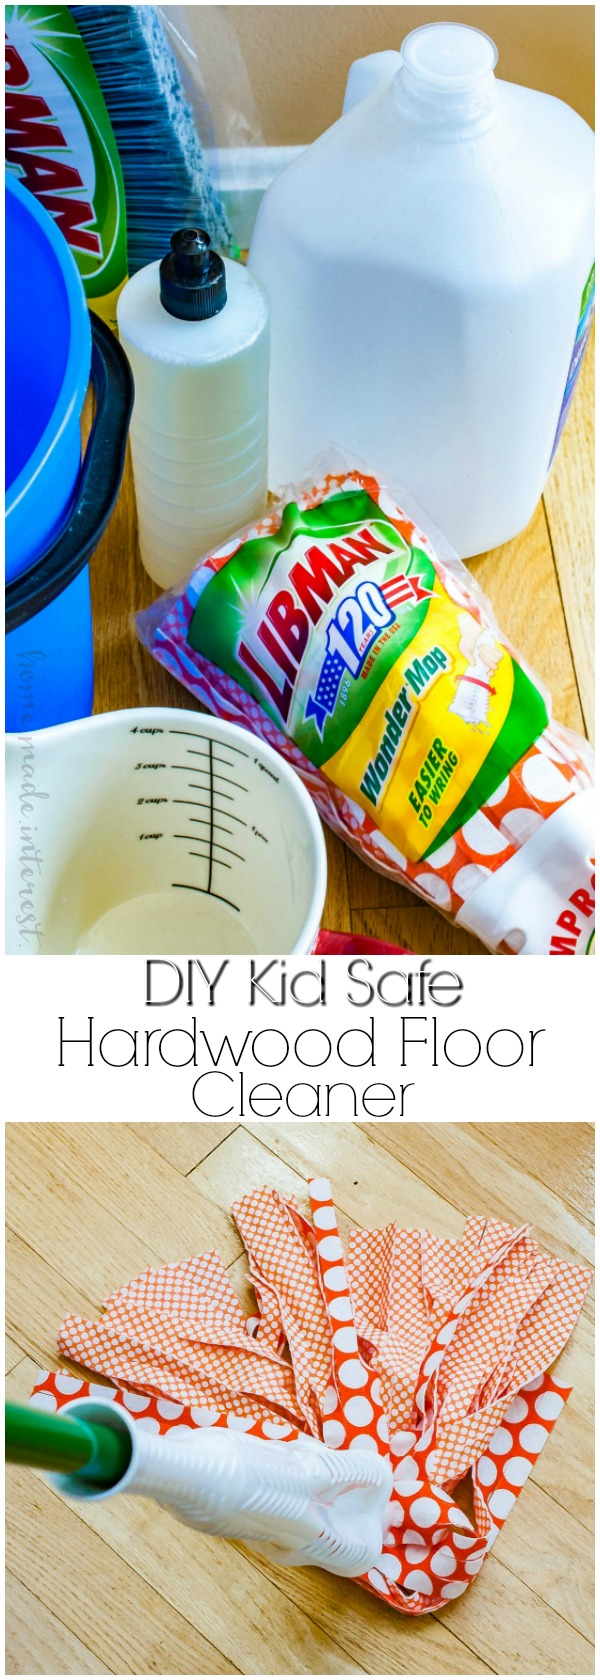 Homemade Wood Floor Cleaner For Spring Cleaning Home